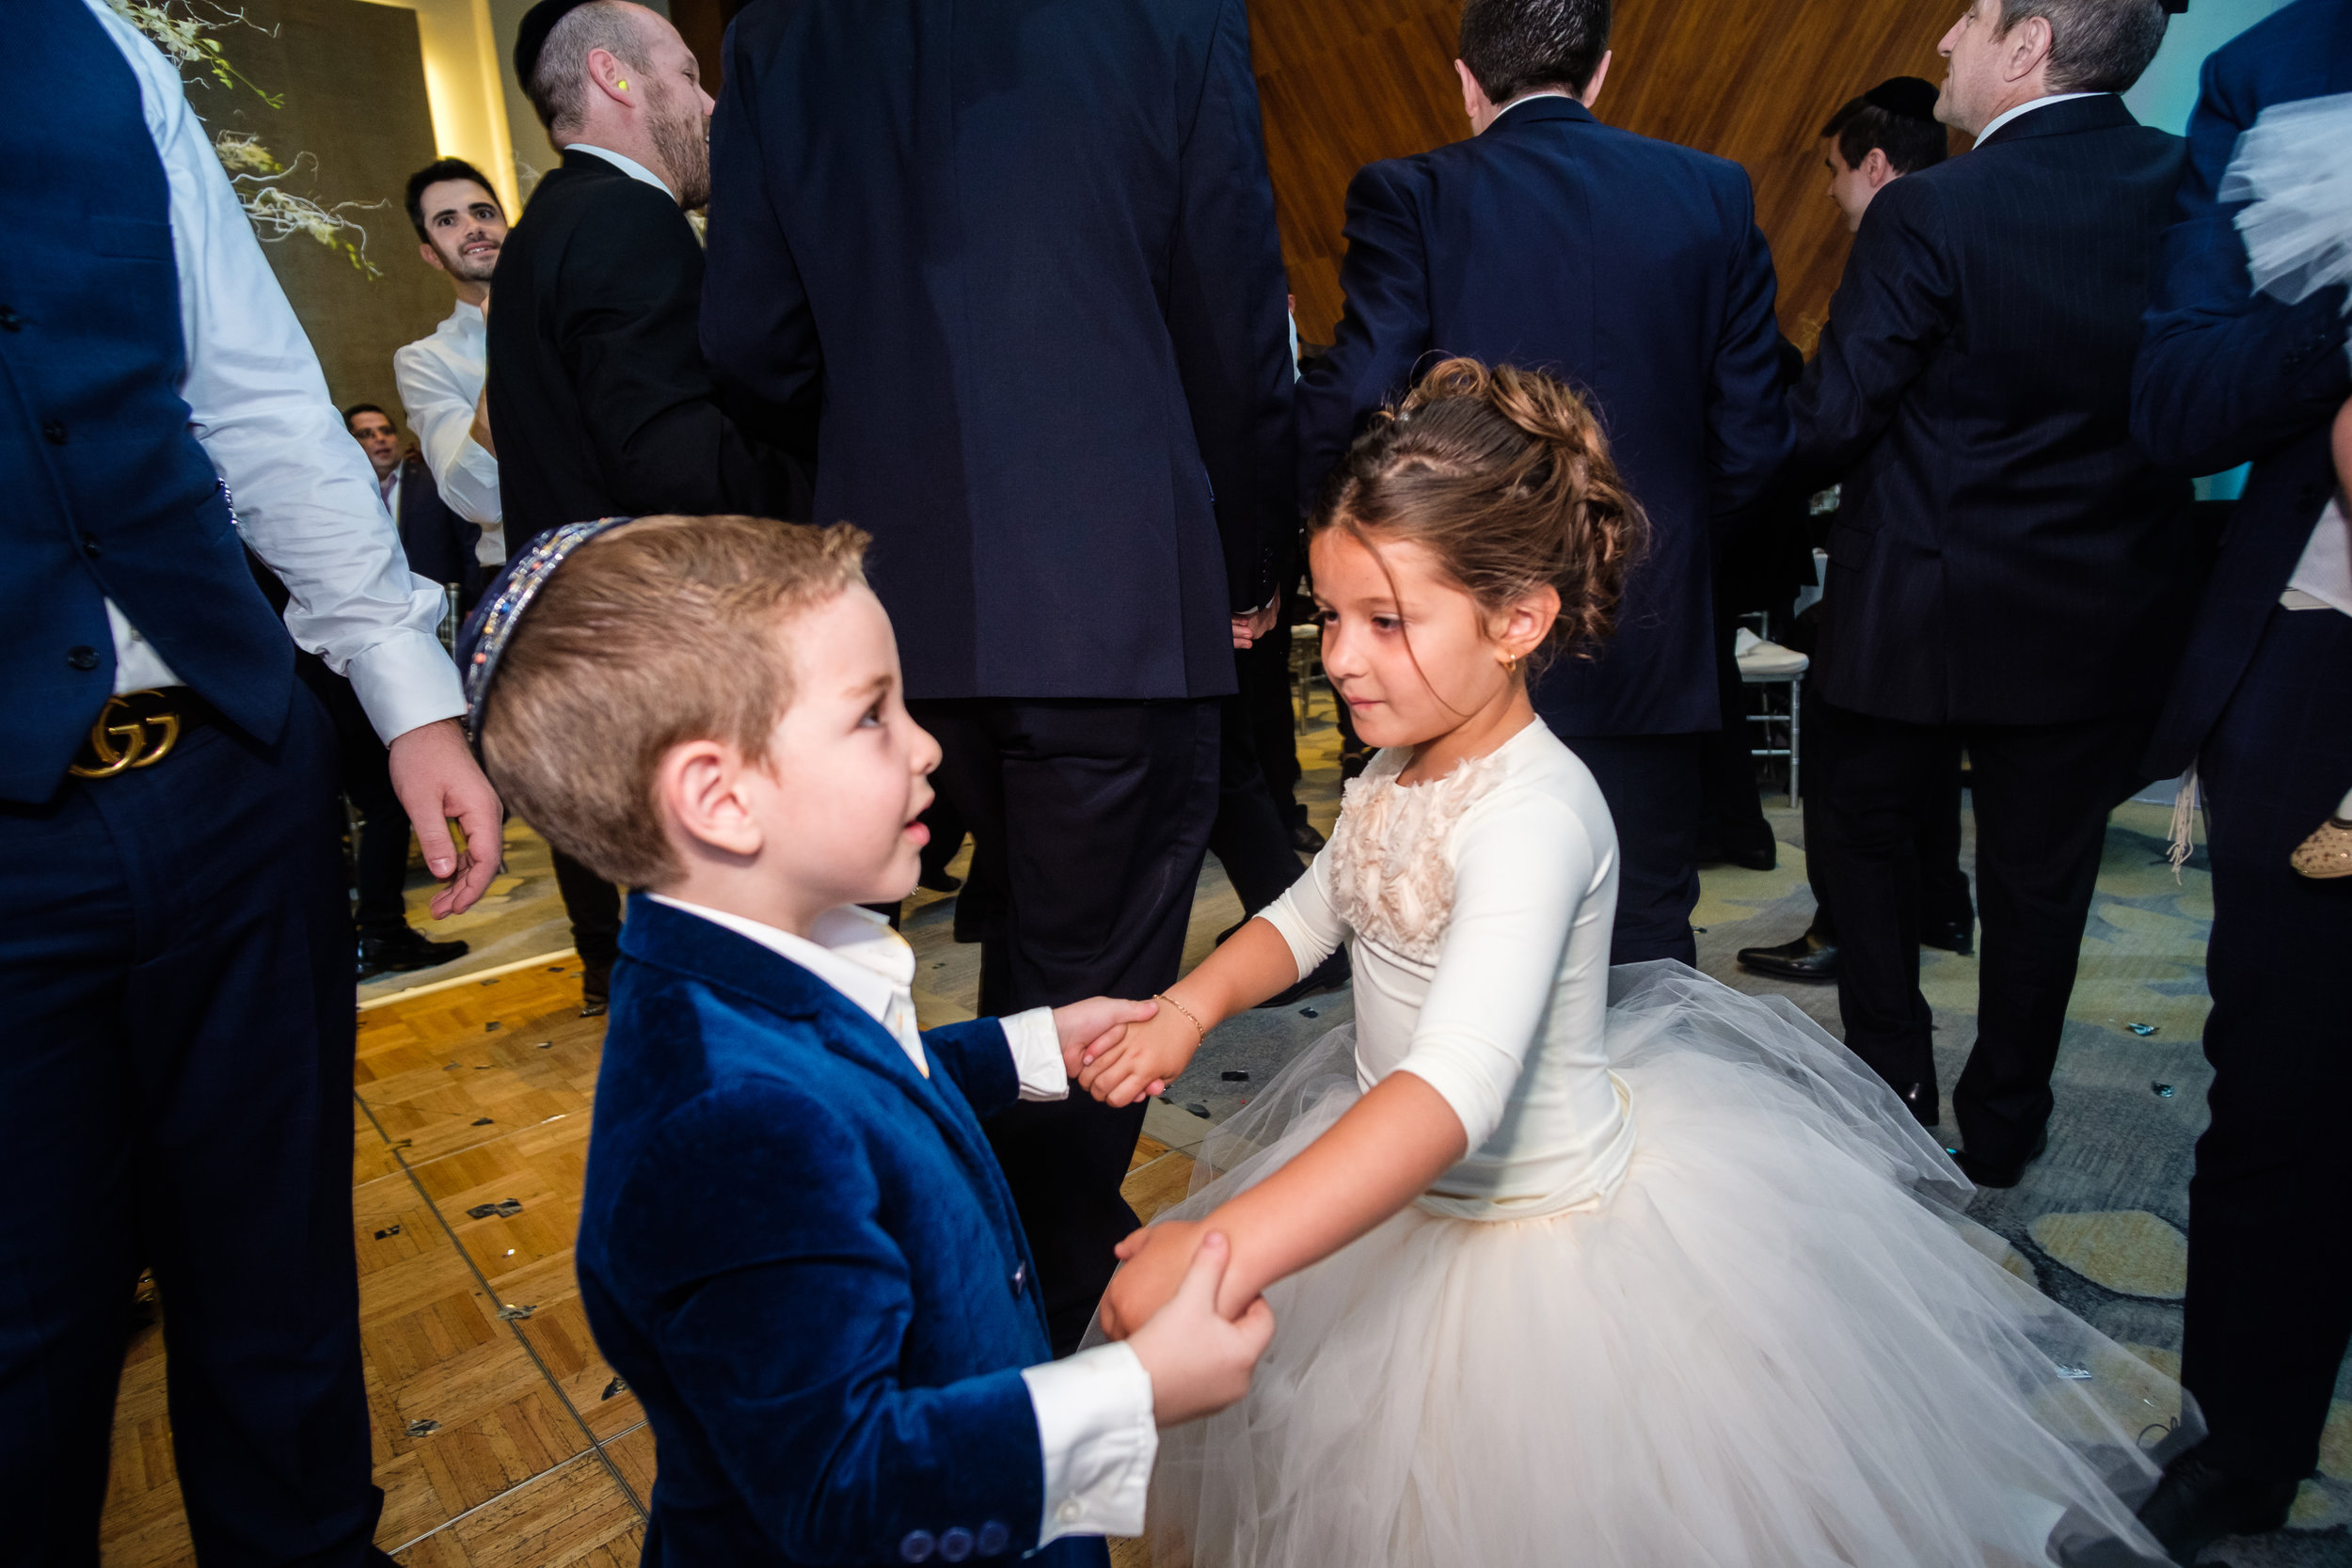 Wedding David & Shlomit-01192.jpg